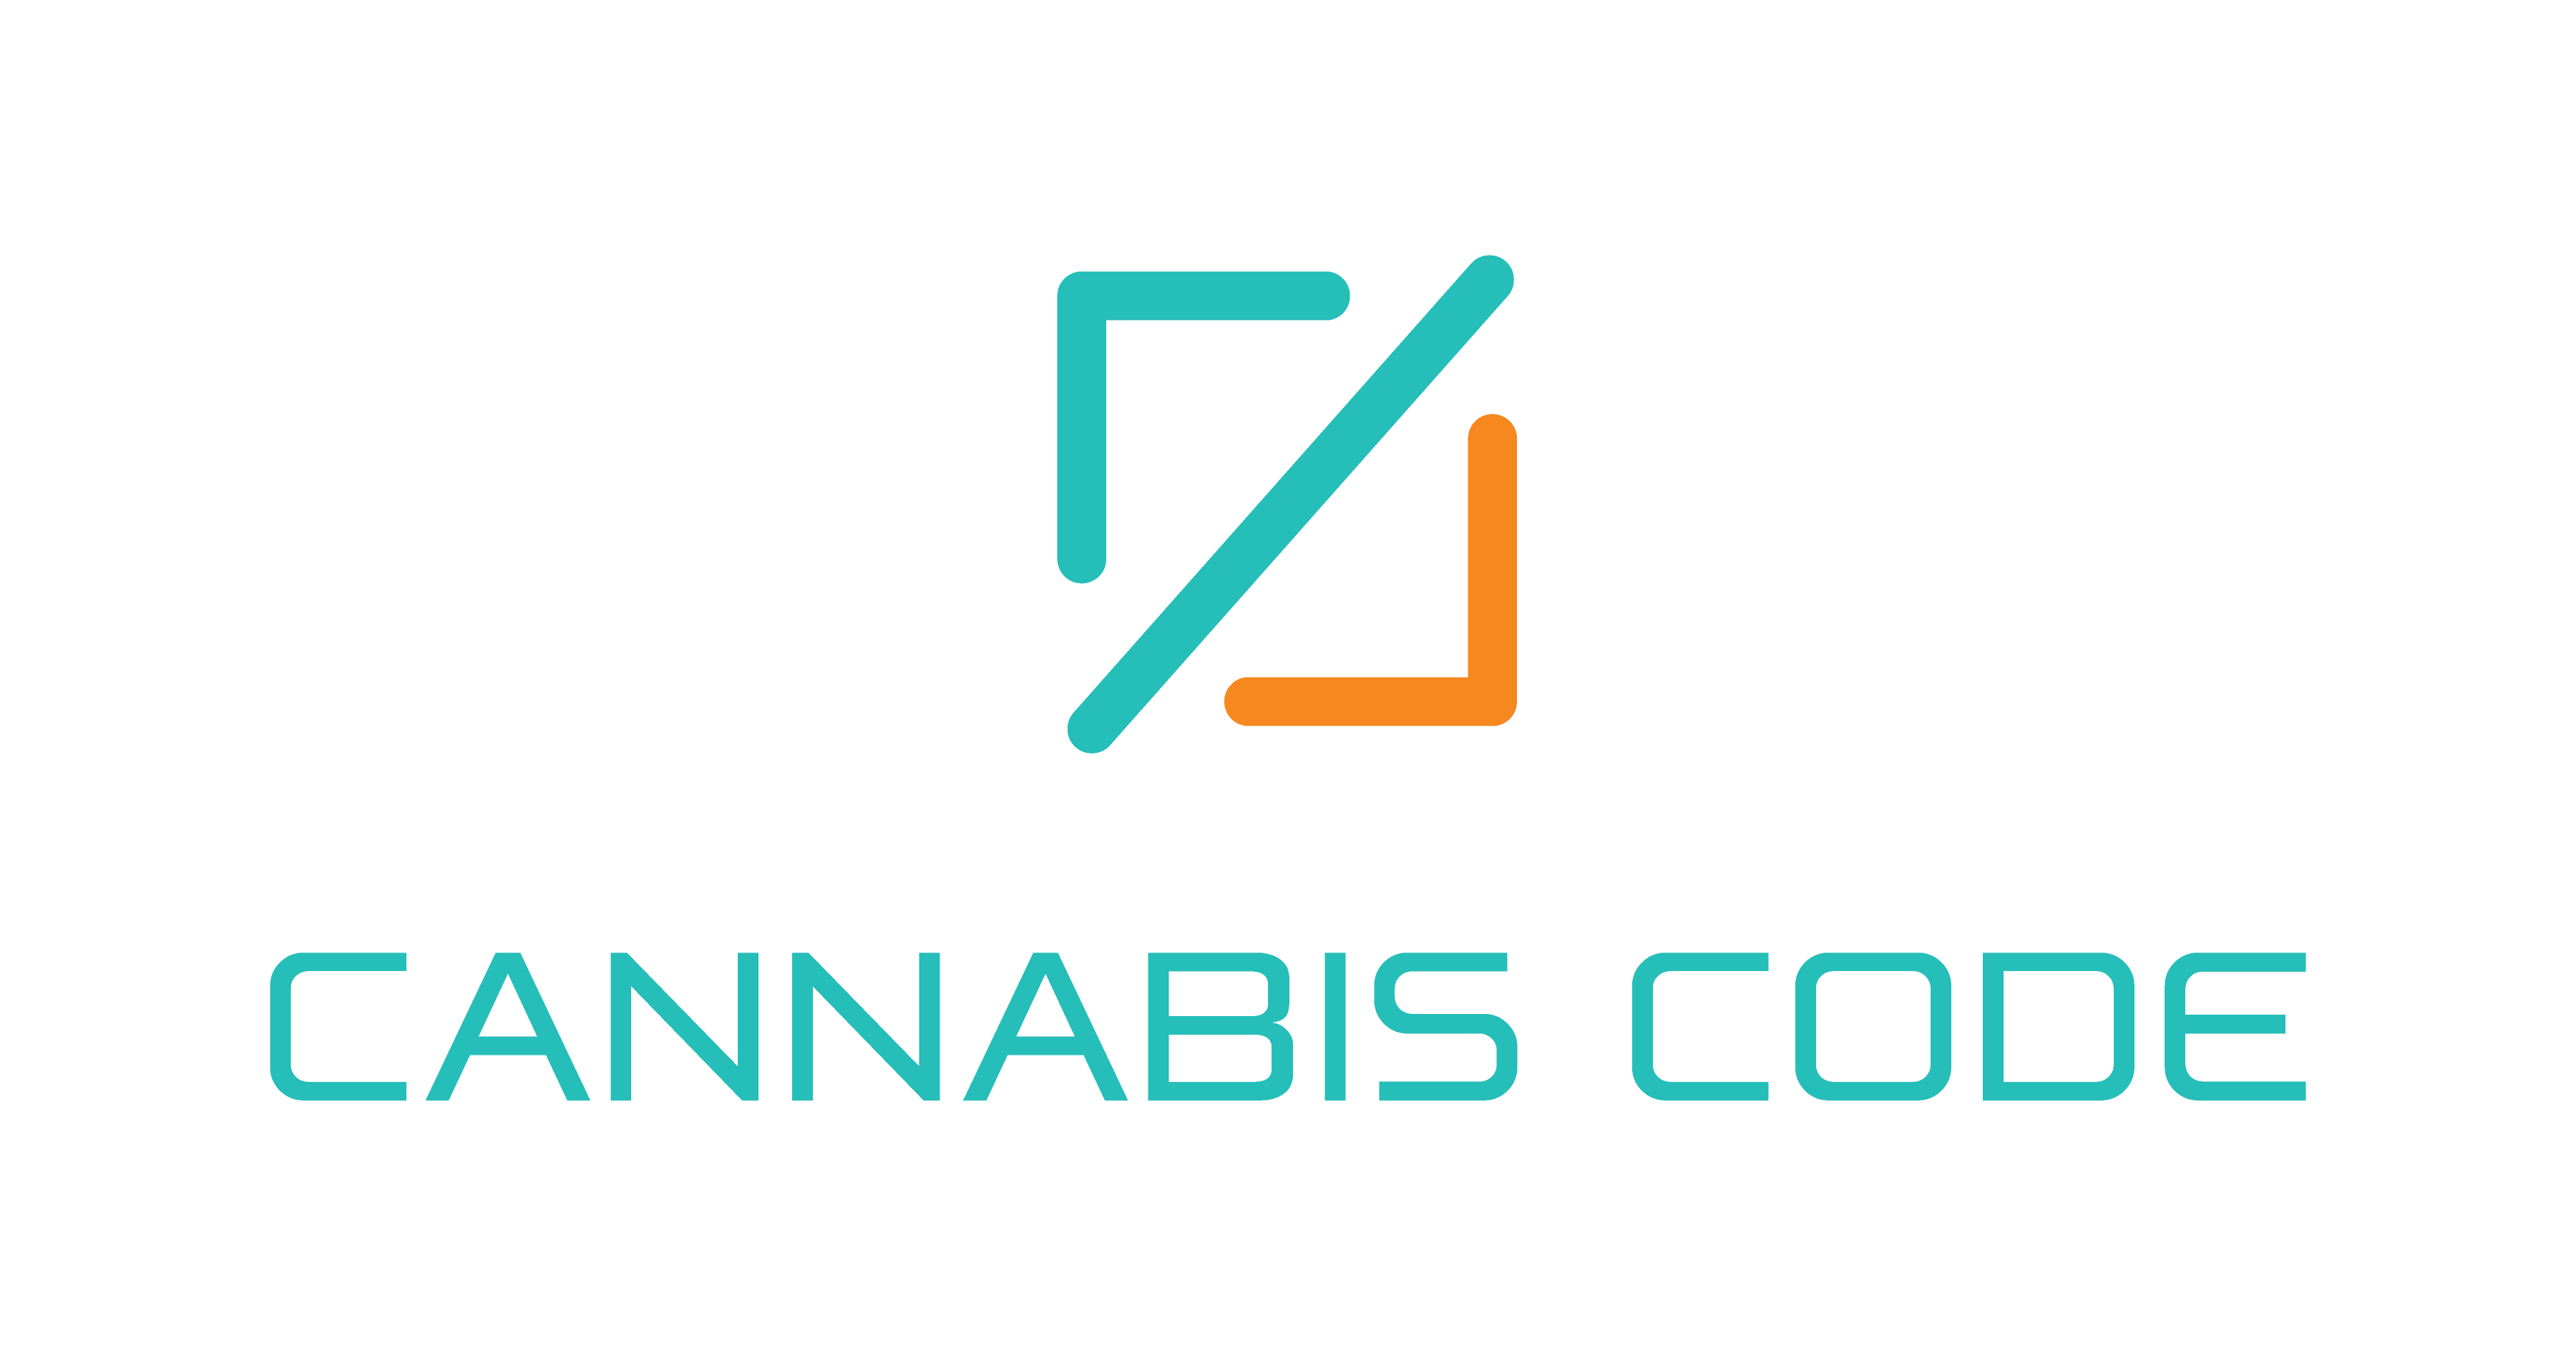 //cannabiscode.io/wp-content/uploads/2018/09/Cannabis-Code_Final.png